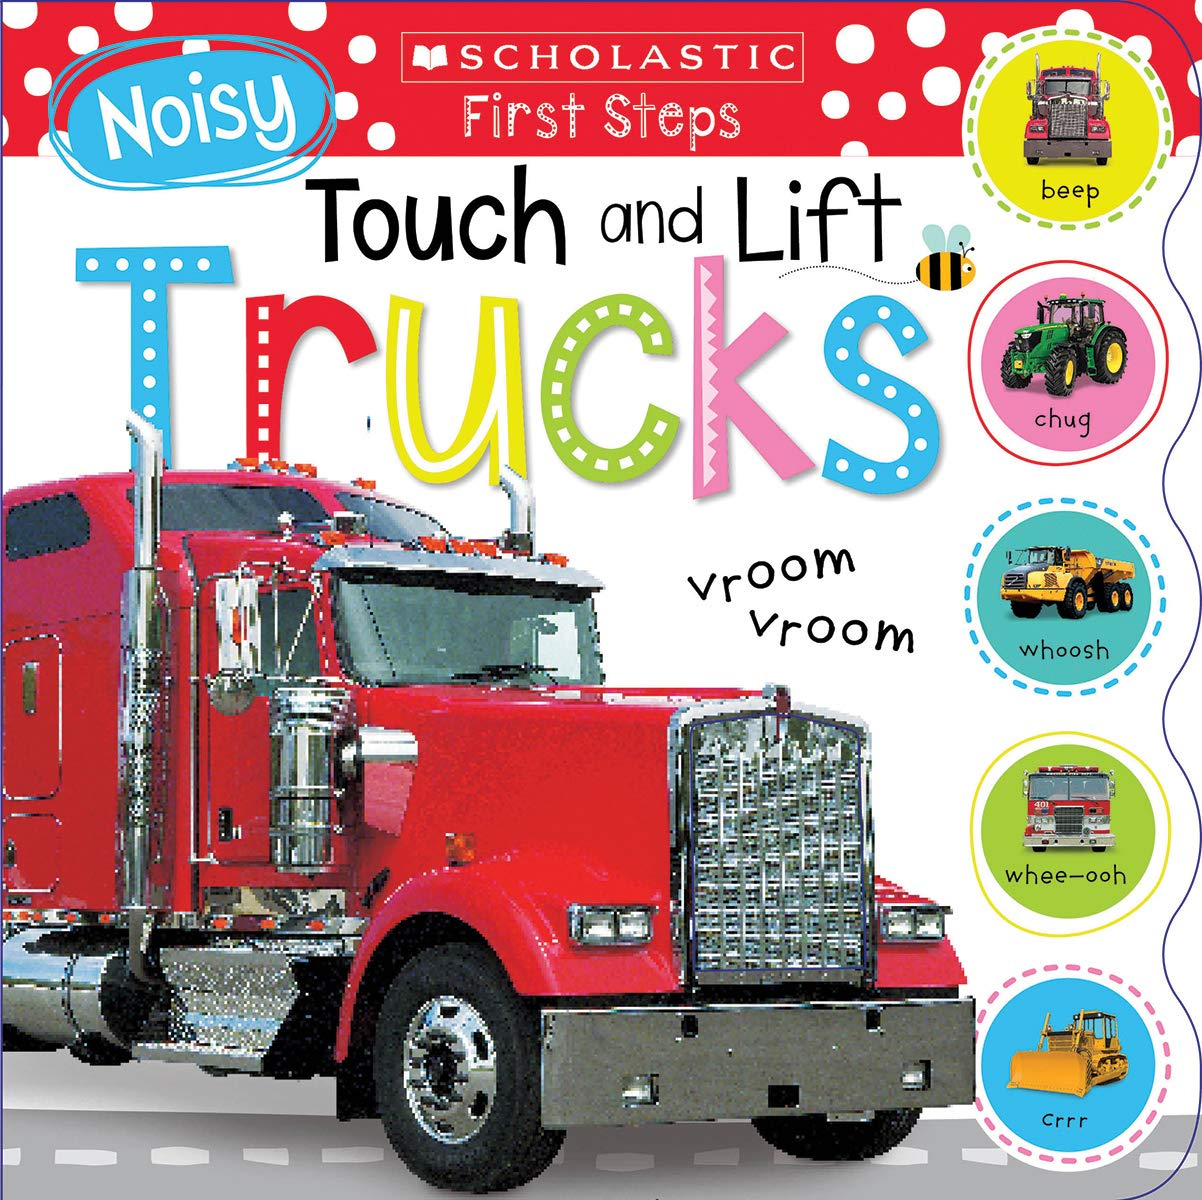 Noisy Touch and Lift Trucks (Scholastic Early Learners) by Cartwheel Books (Image #1)